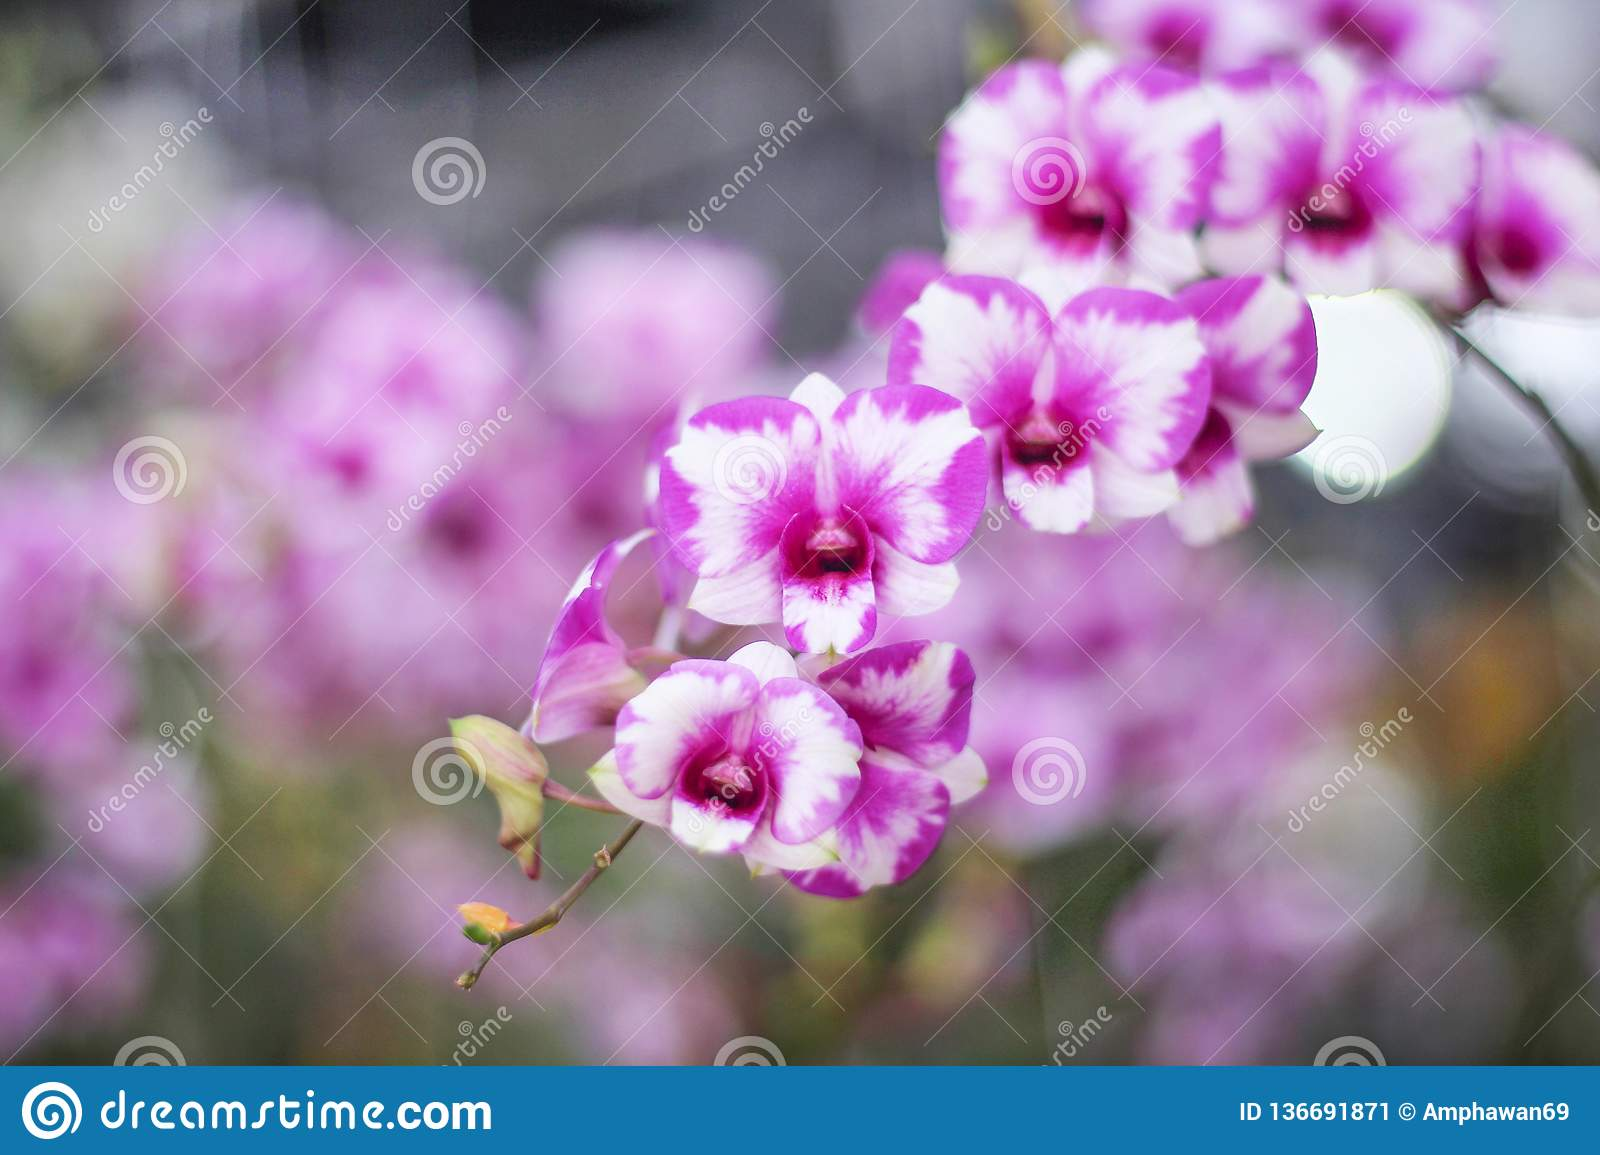 Colorful inflorescence of purple orchids with white striped blooming in garden background,natural flower huge group hanging on